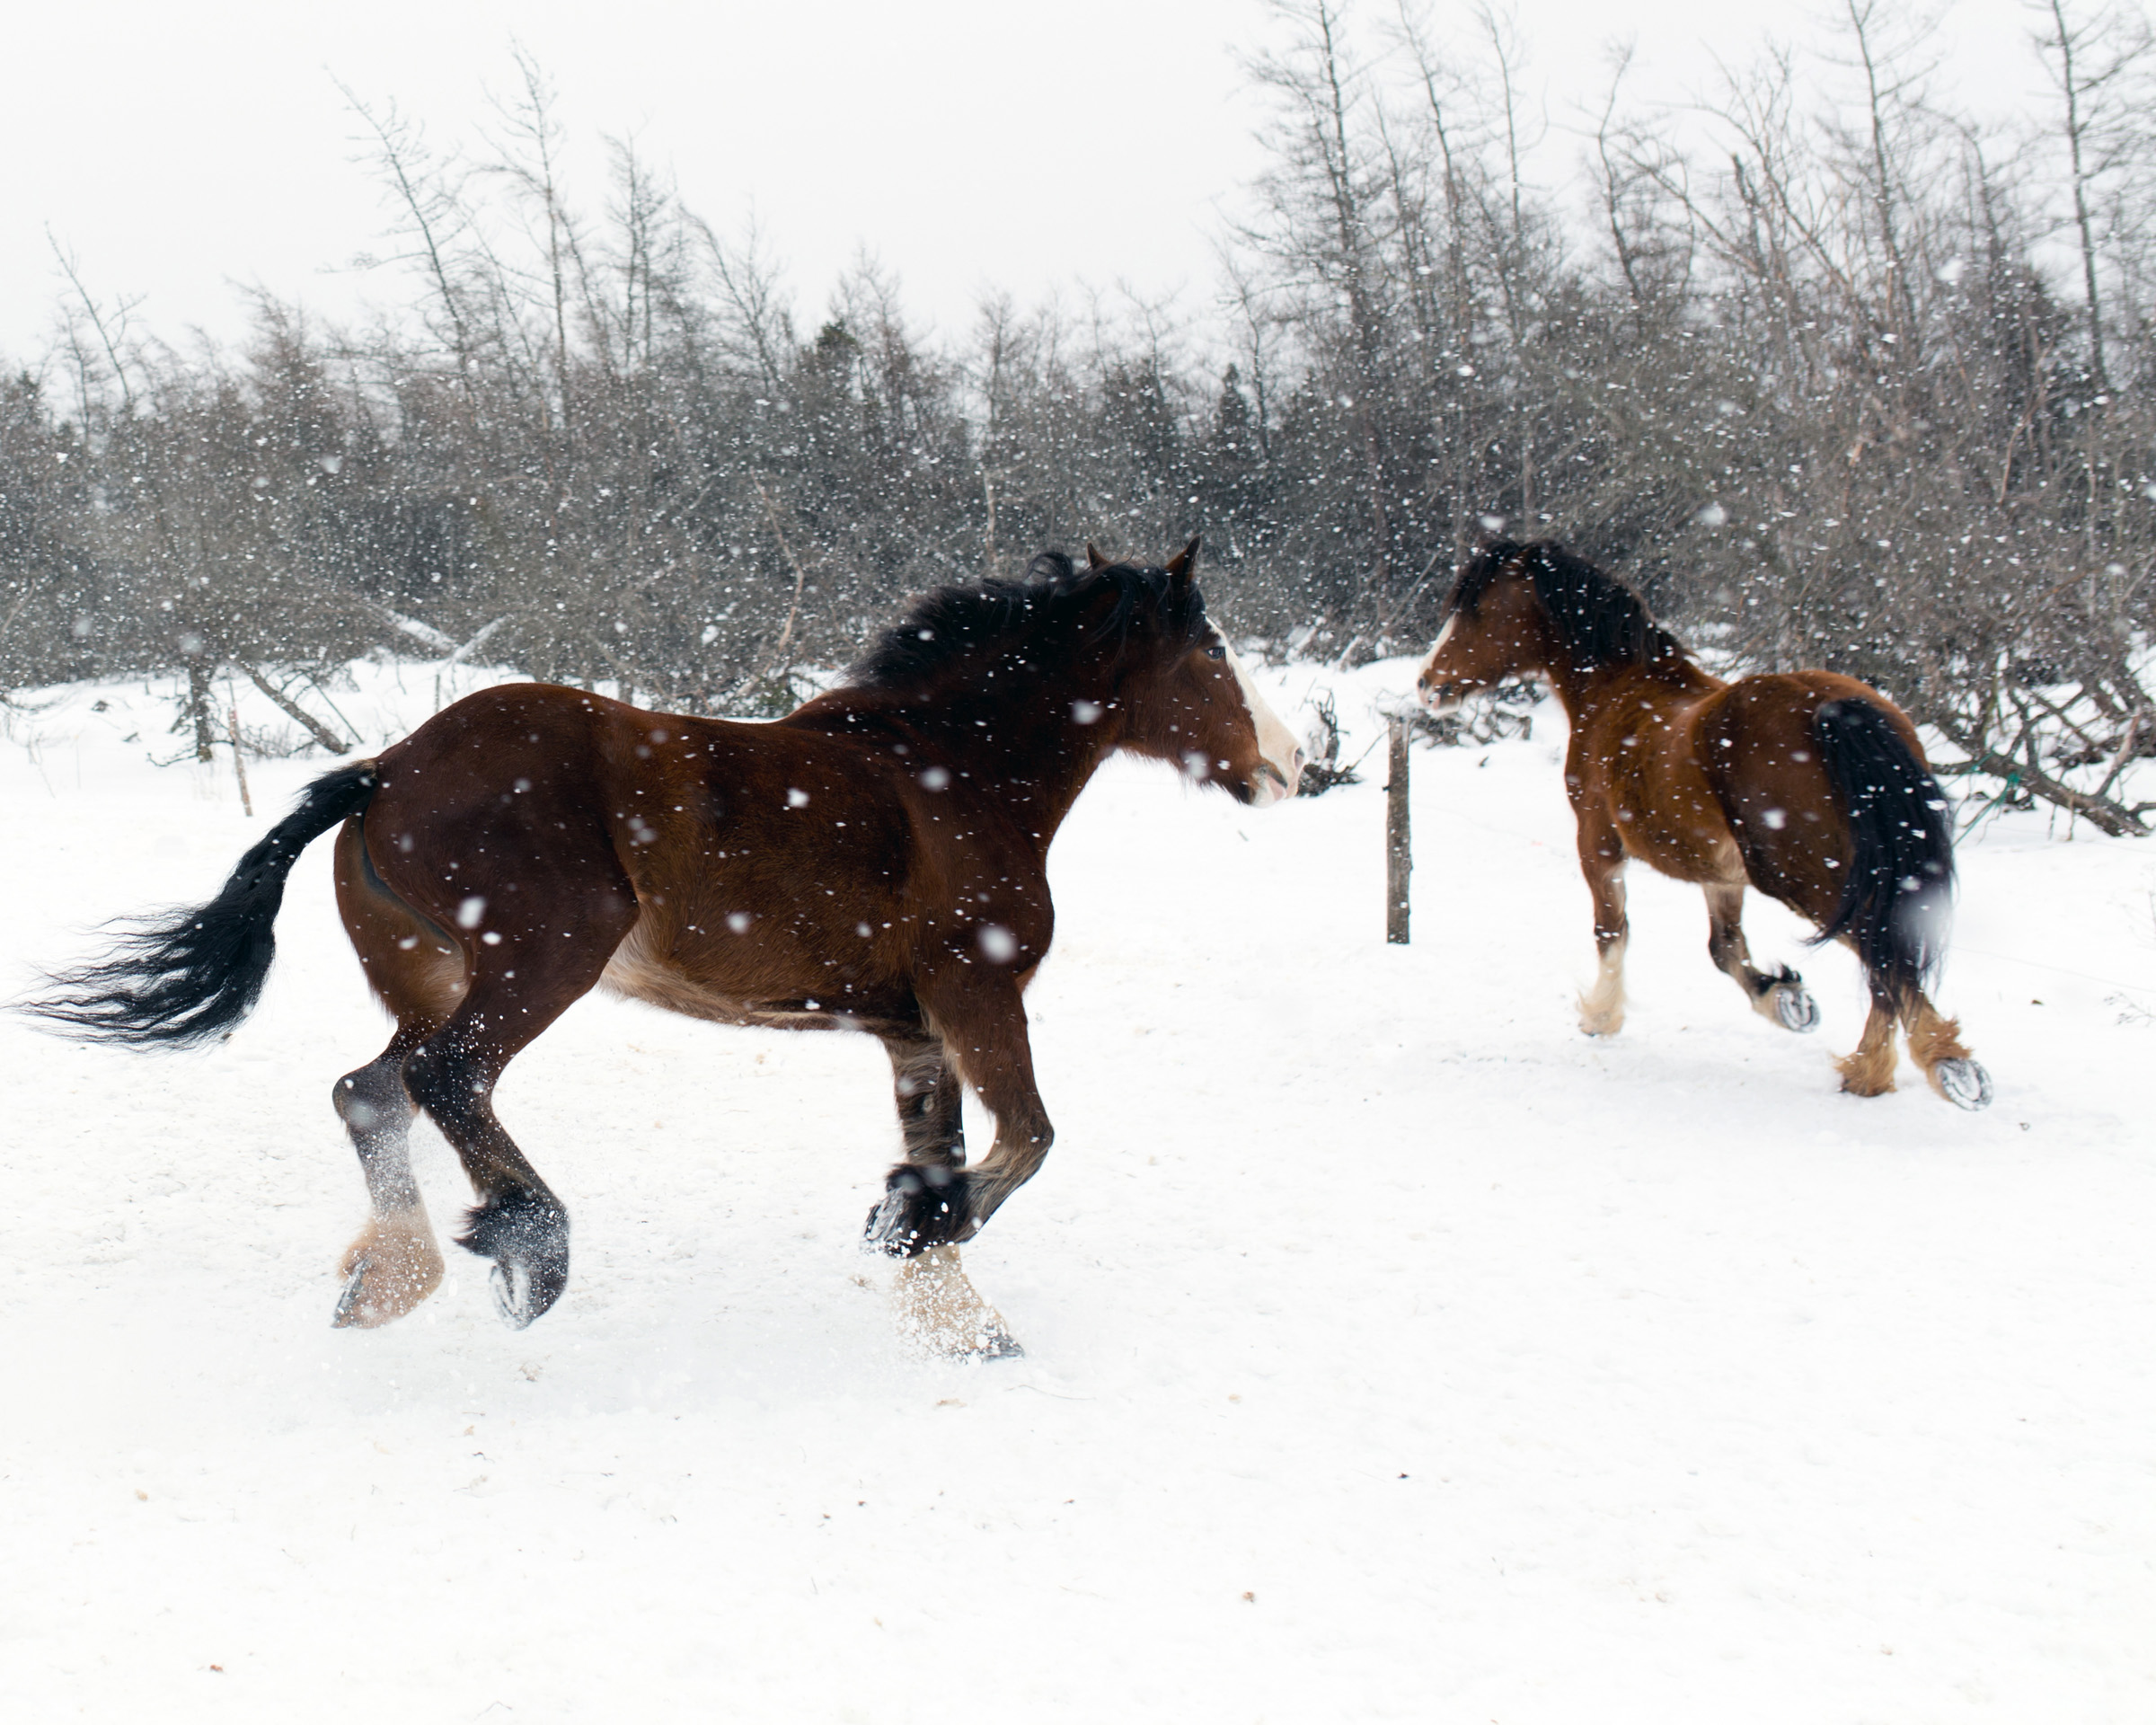 Horses in the snow photo